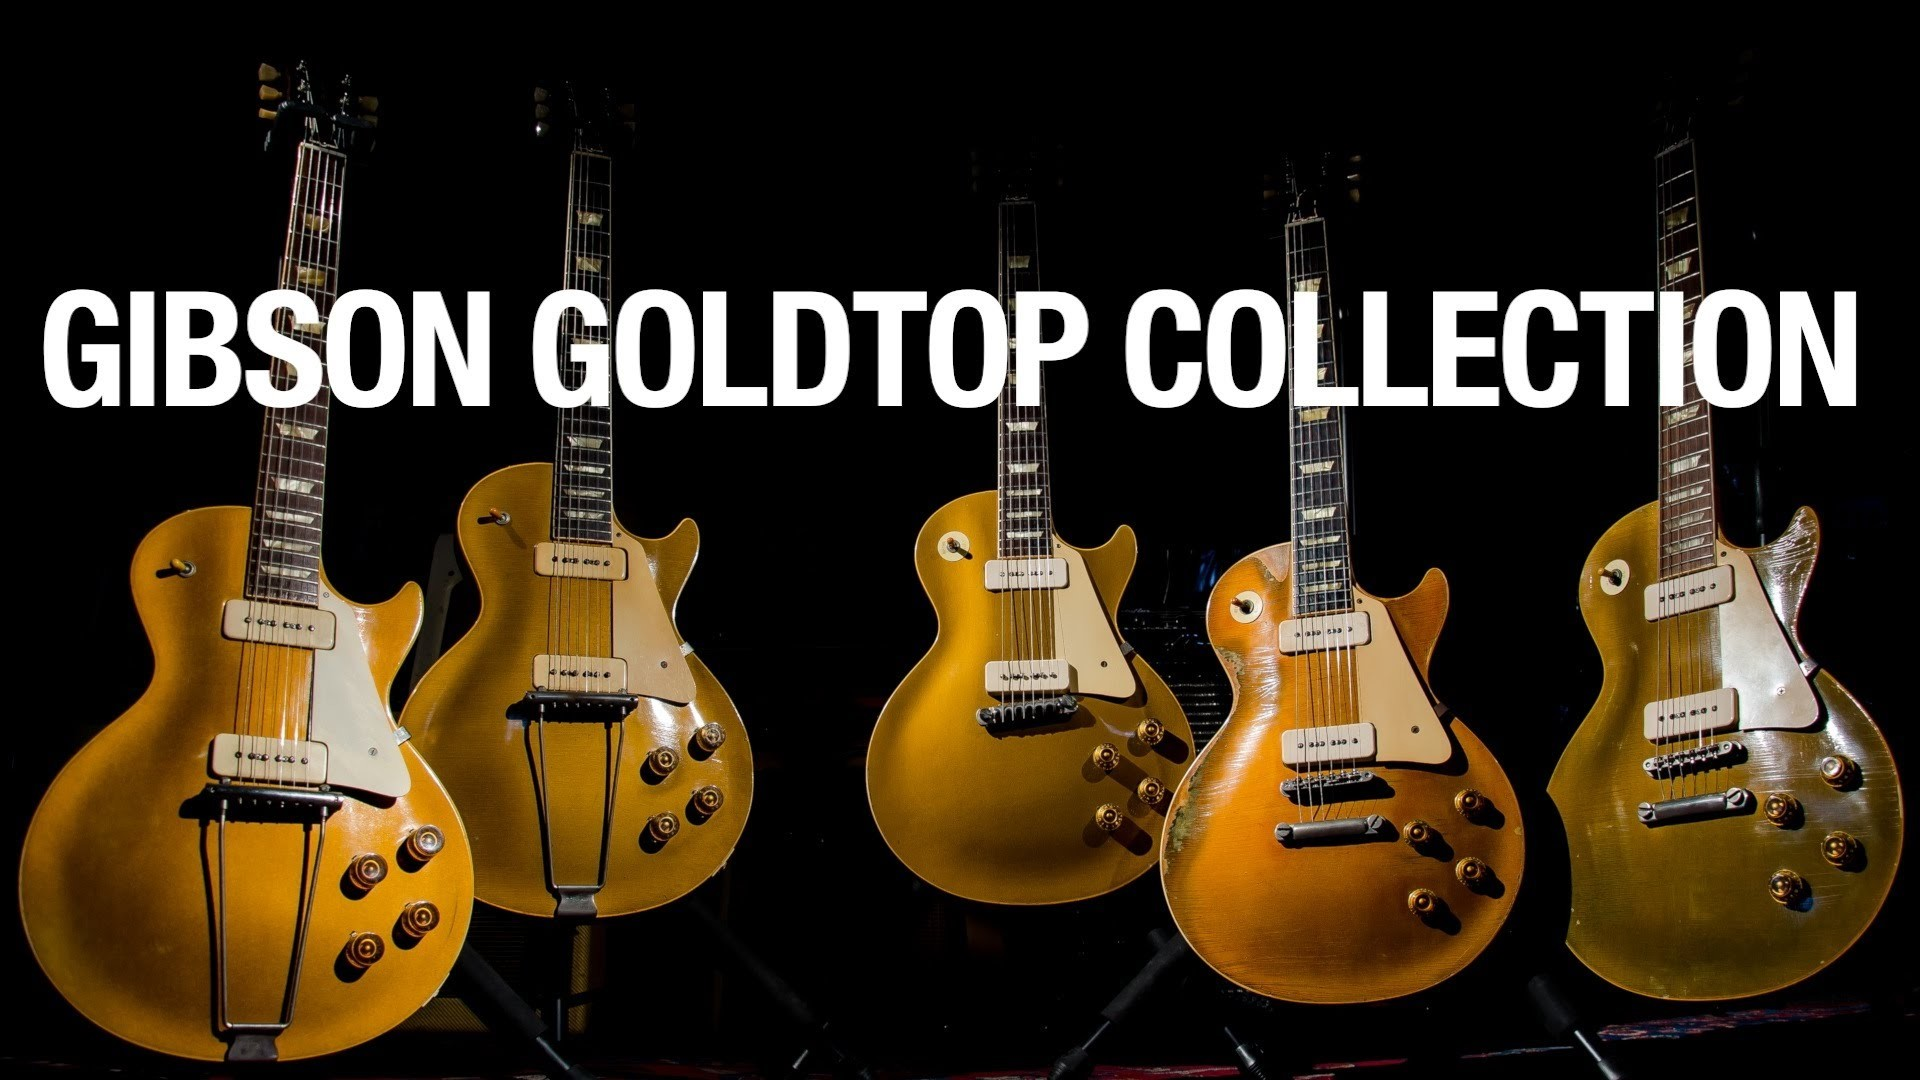 The Gibson Goldtop Collection (The Evolution of the Les Paul) – YouTube